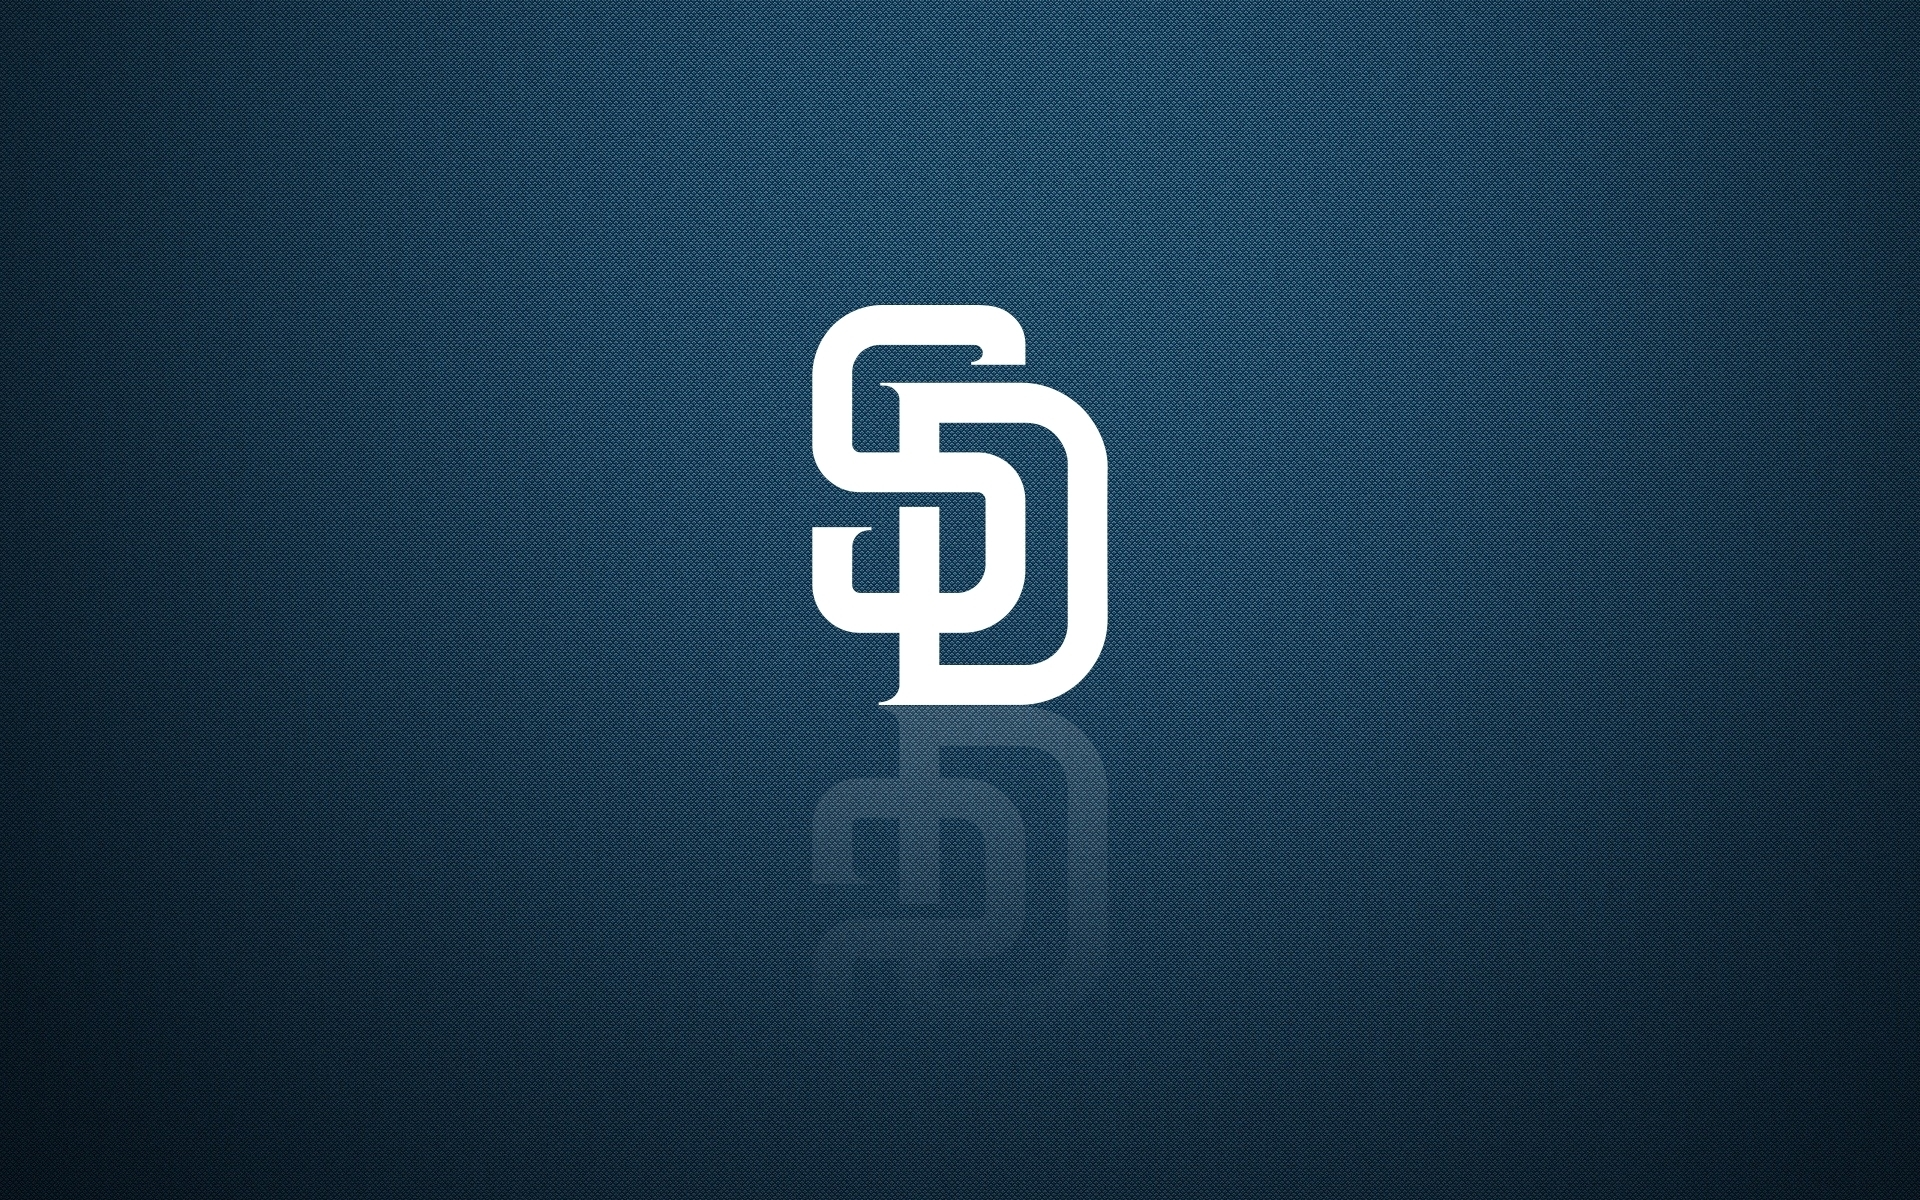 san diego padres wallpaper with logo, desktop background 1920×1200